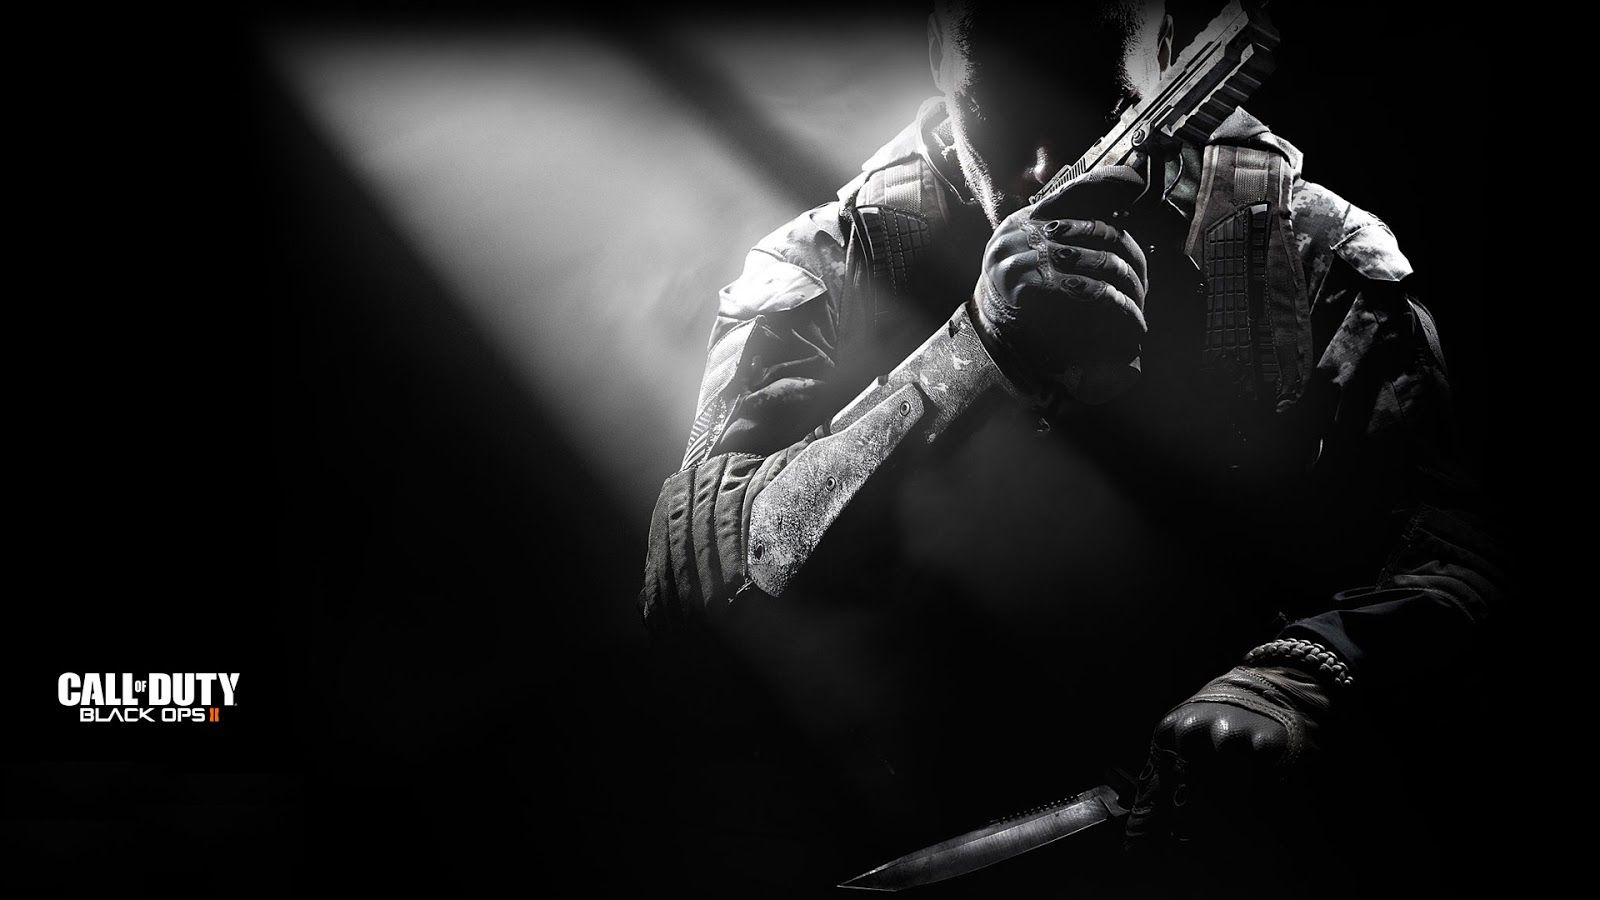 Call Of Duty Black Ops 2 Is Finally Ready To Be Launched And Is Set To Be One Of The Highlights Of This Week S Ps3 Call Of Duty Call Of